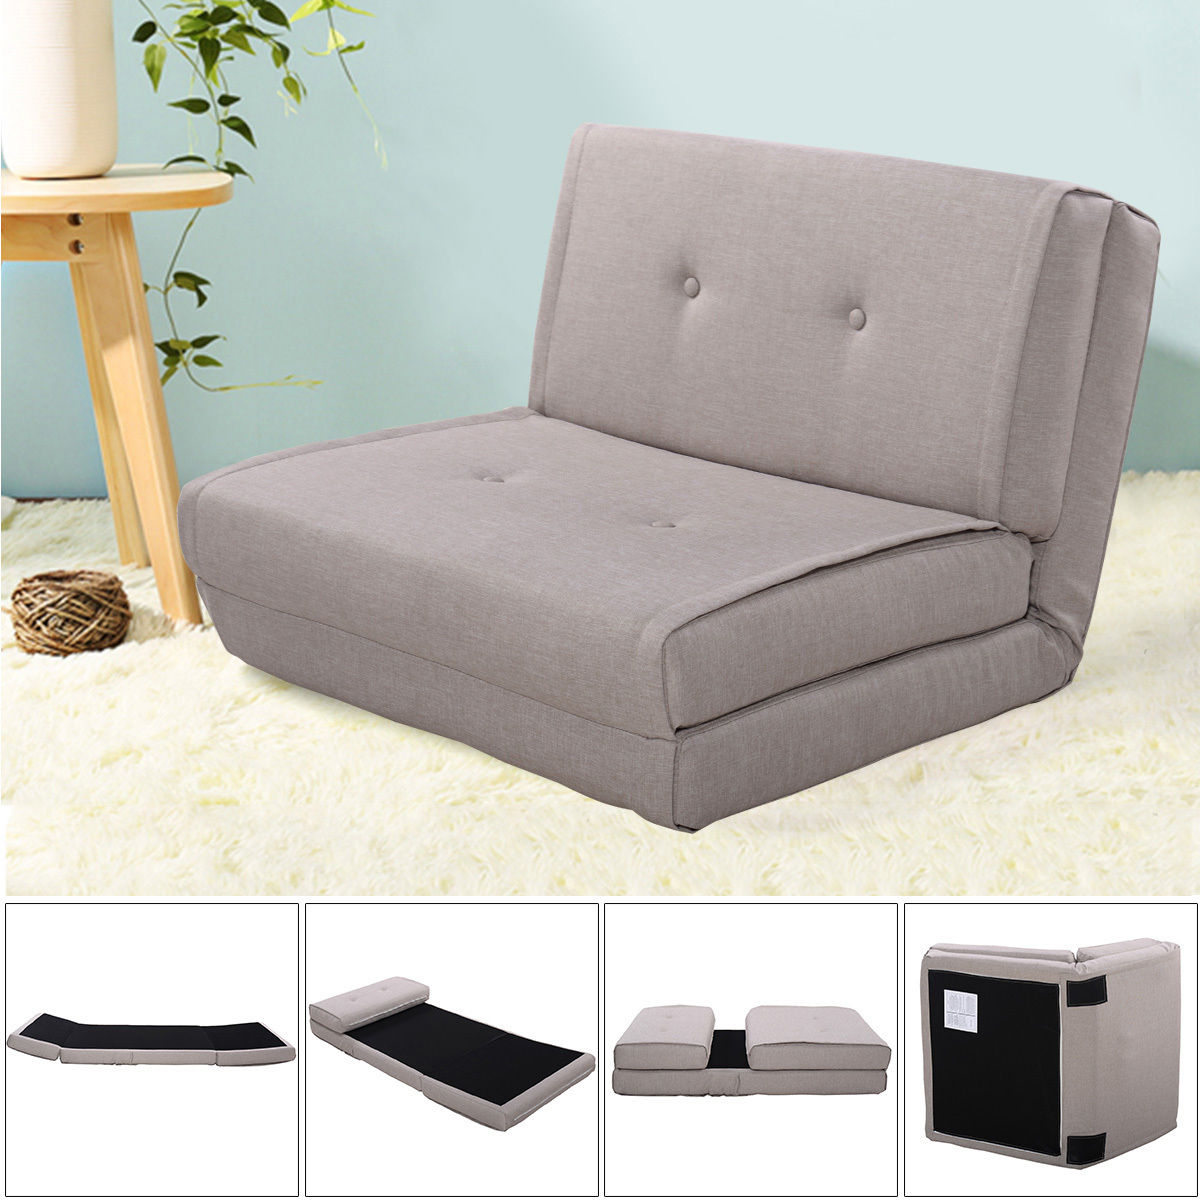 Giantex Fold Down Sofa Bed Living Room Flip Out Lounger Convertible Sleeper Bed Couch Game Modern Sofa Chairs HW52681LTGR цены